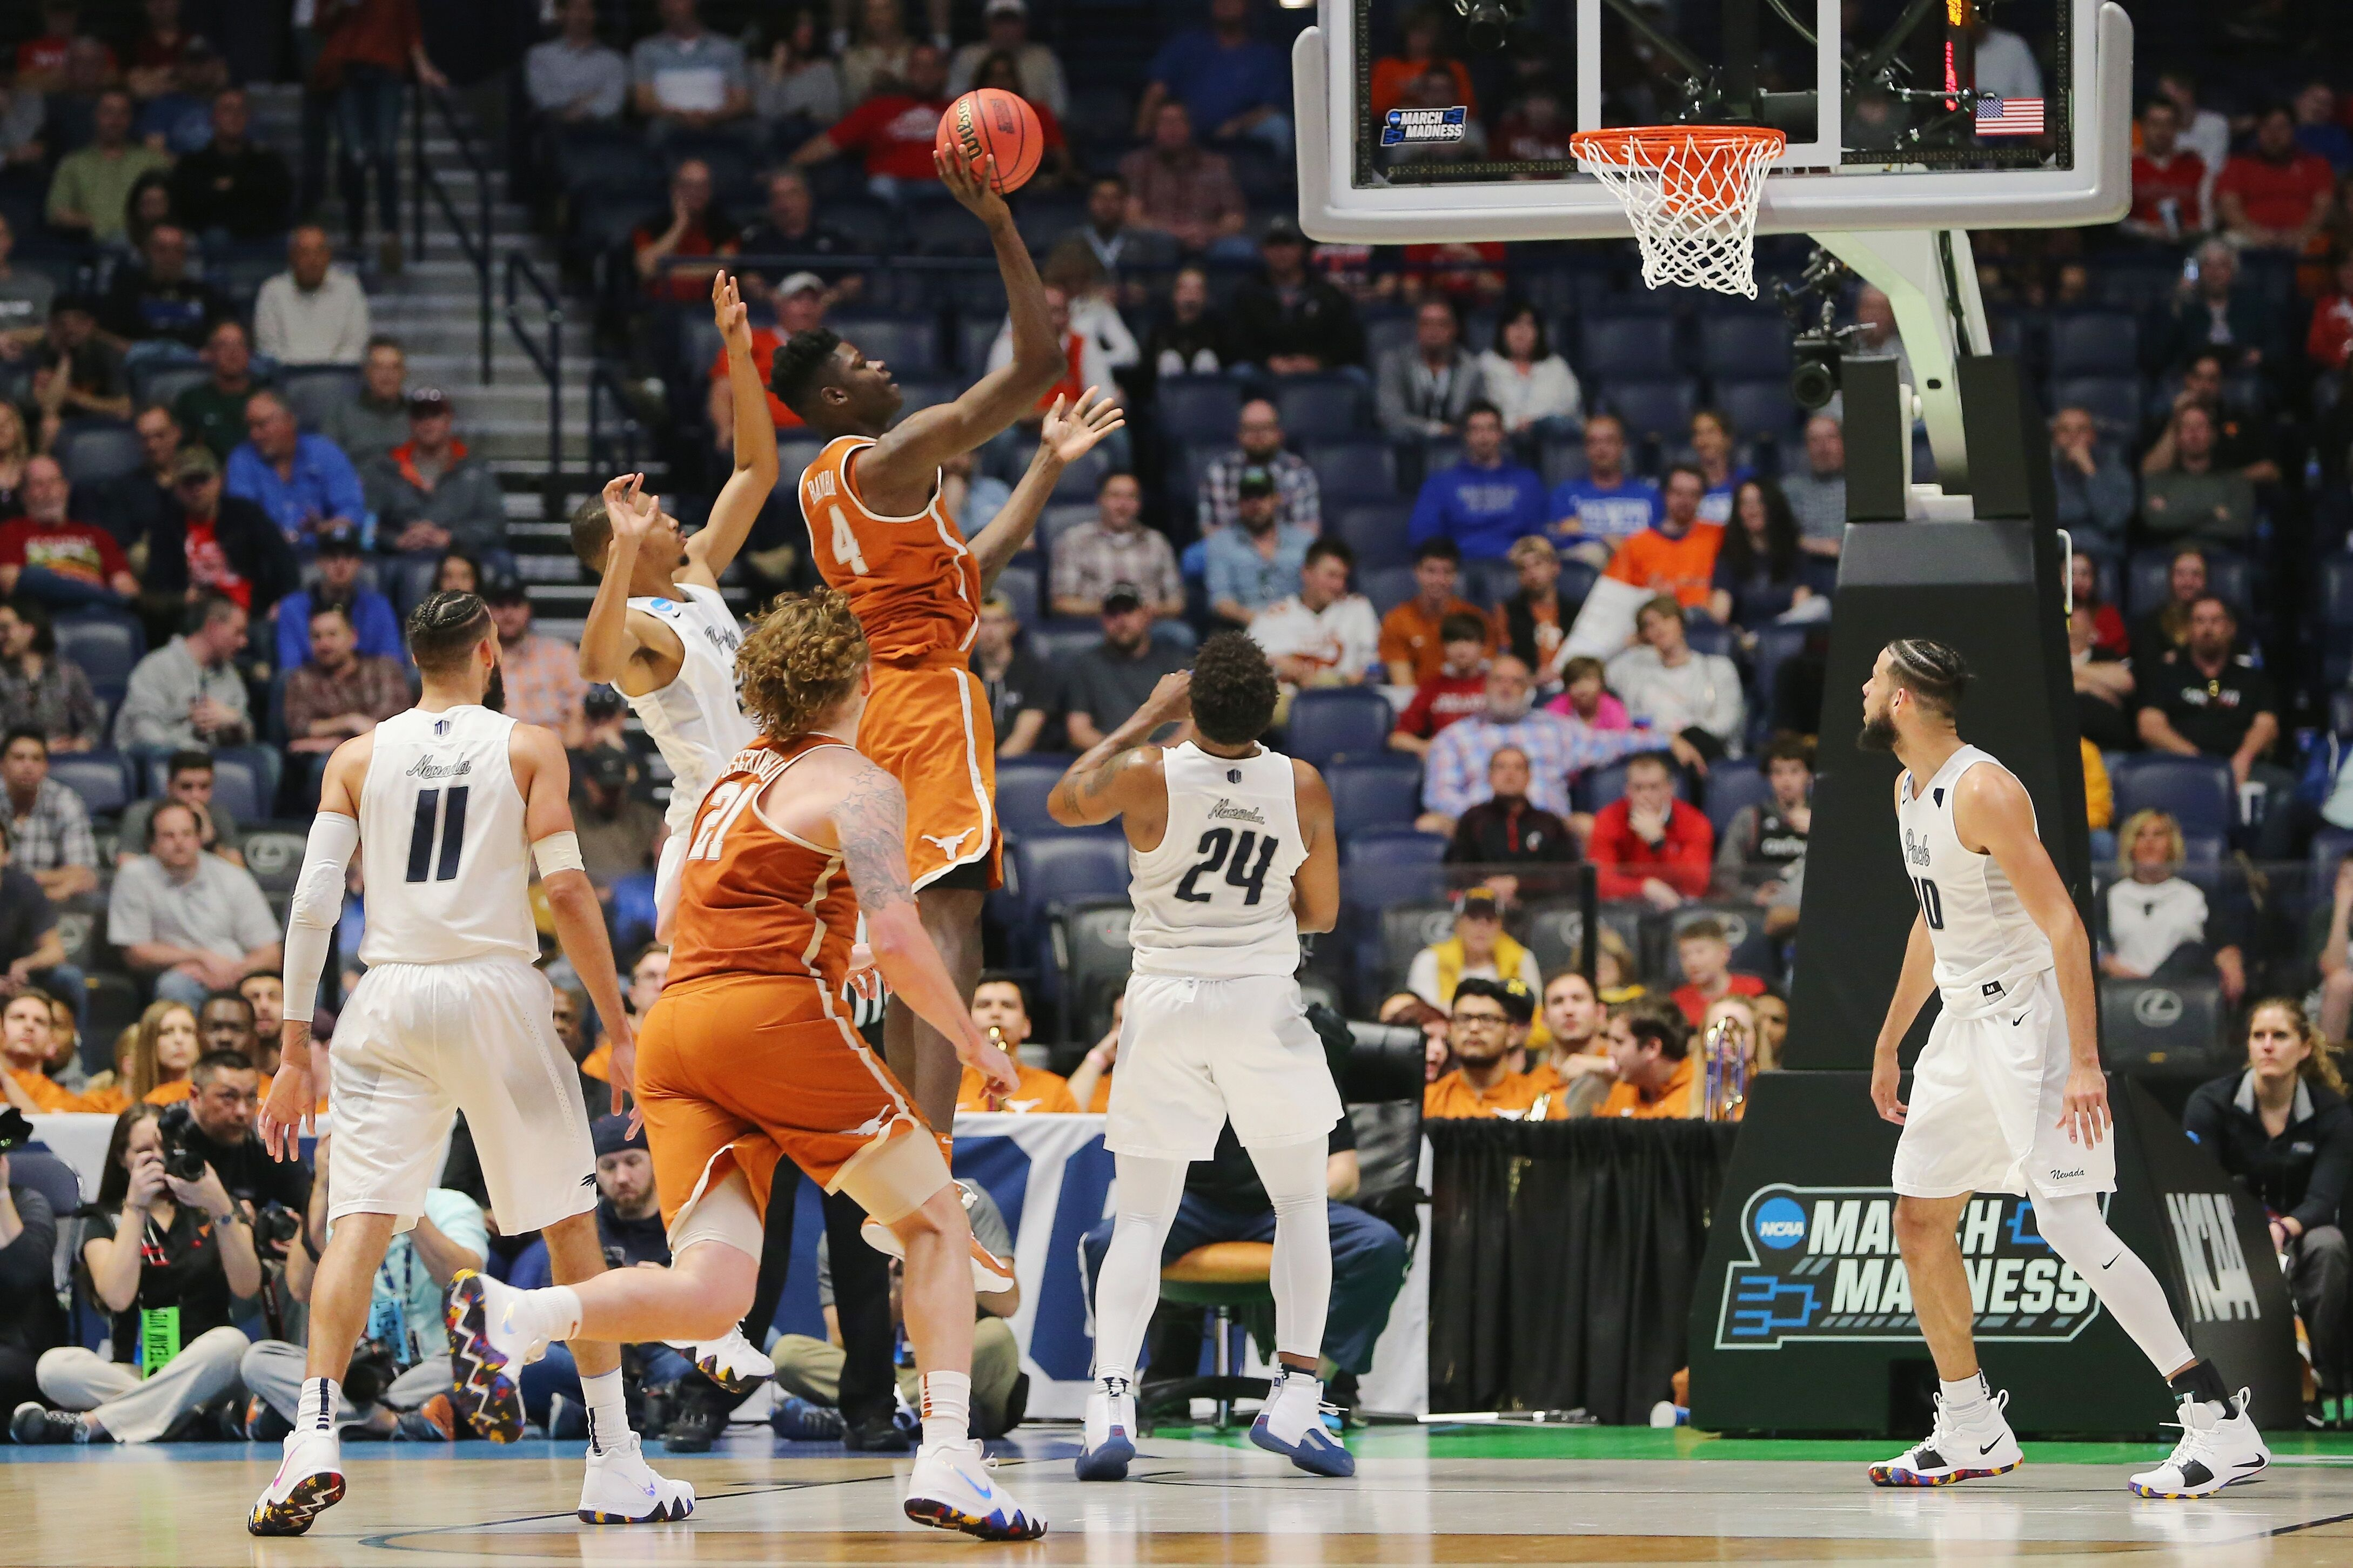 2018 NBA Draft: Mo Bamba could be a serious threat in the NBA